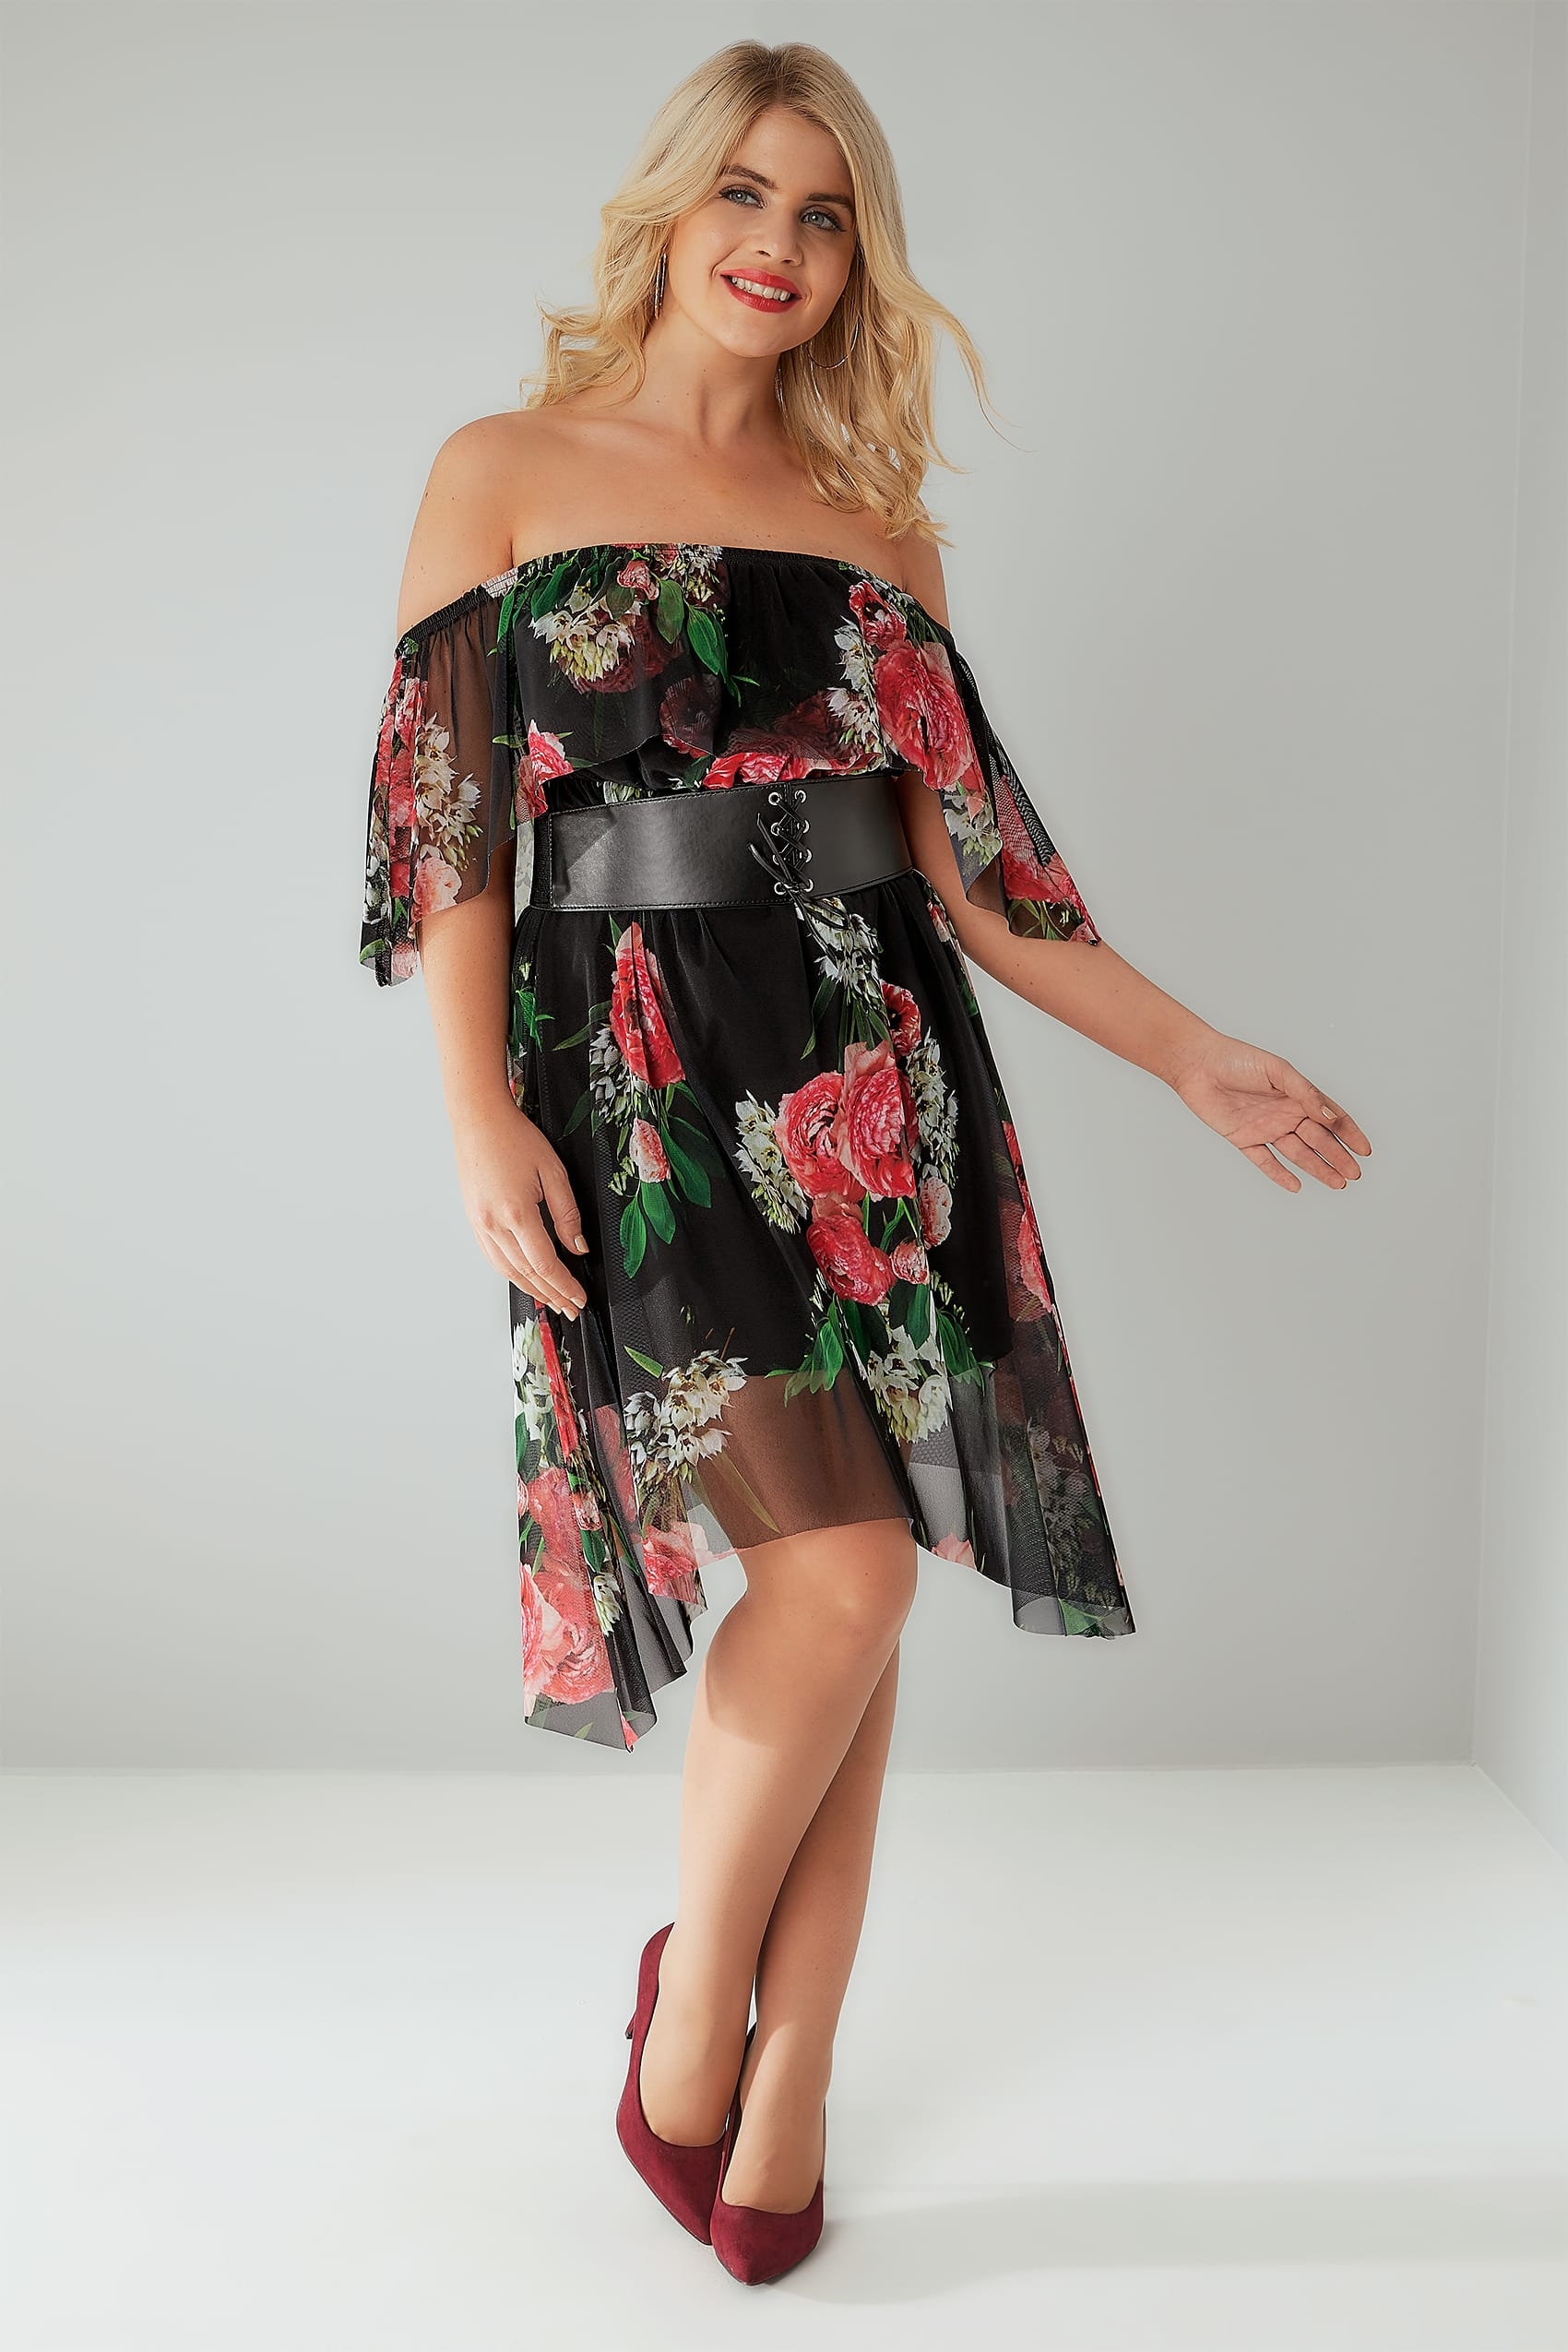 Plus Size Clothing Curve Our Curve collection is thoughtfully designed for curvy figures in sizes 18 to 32 and is brimming with trend-led pieces, like pretty shirts with no-peep buttons, lightweight linen trousers and silky kimono cover-ups.